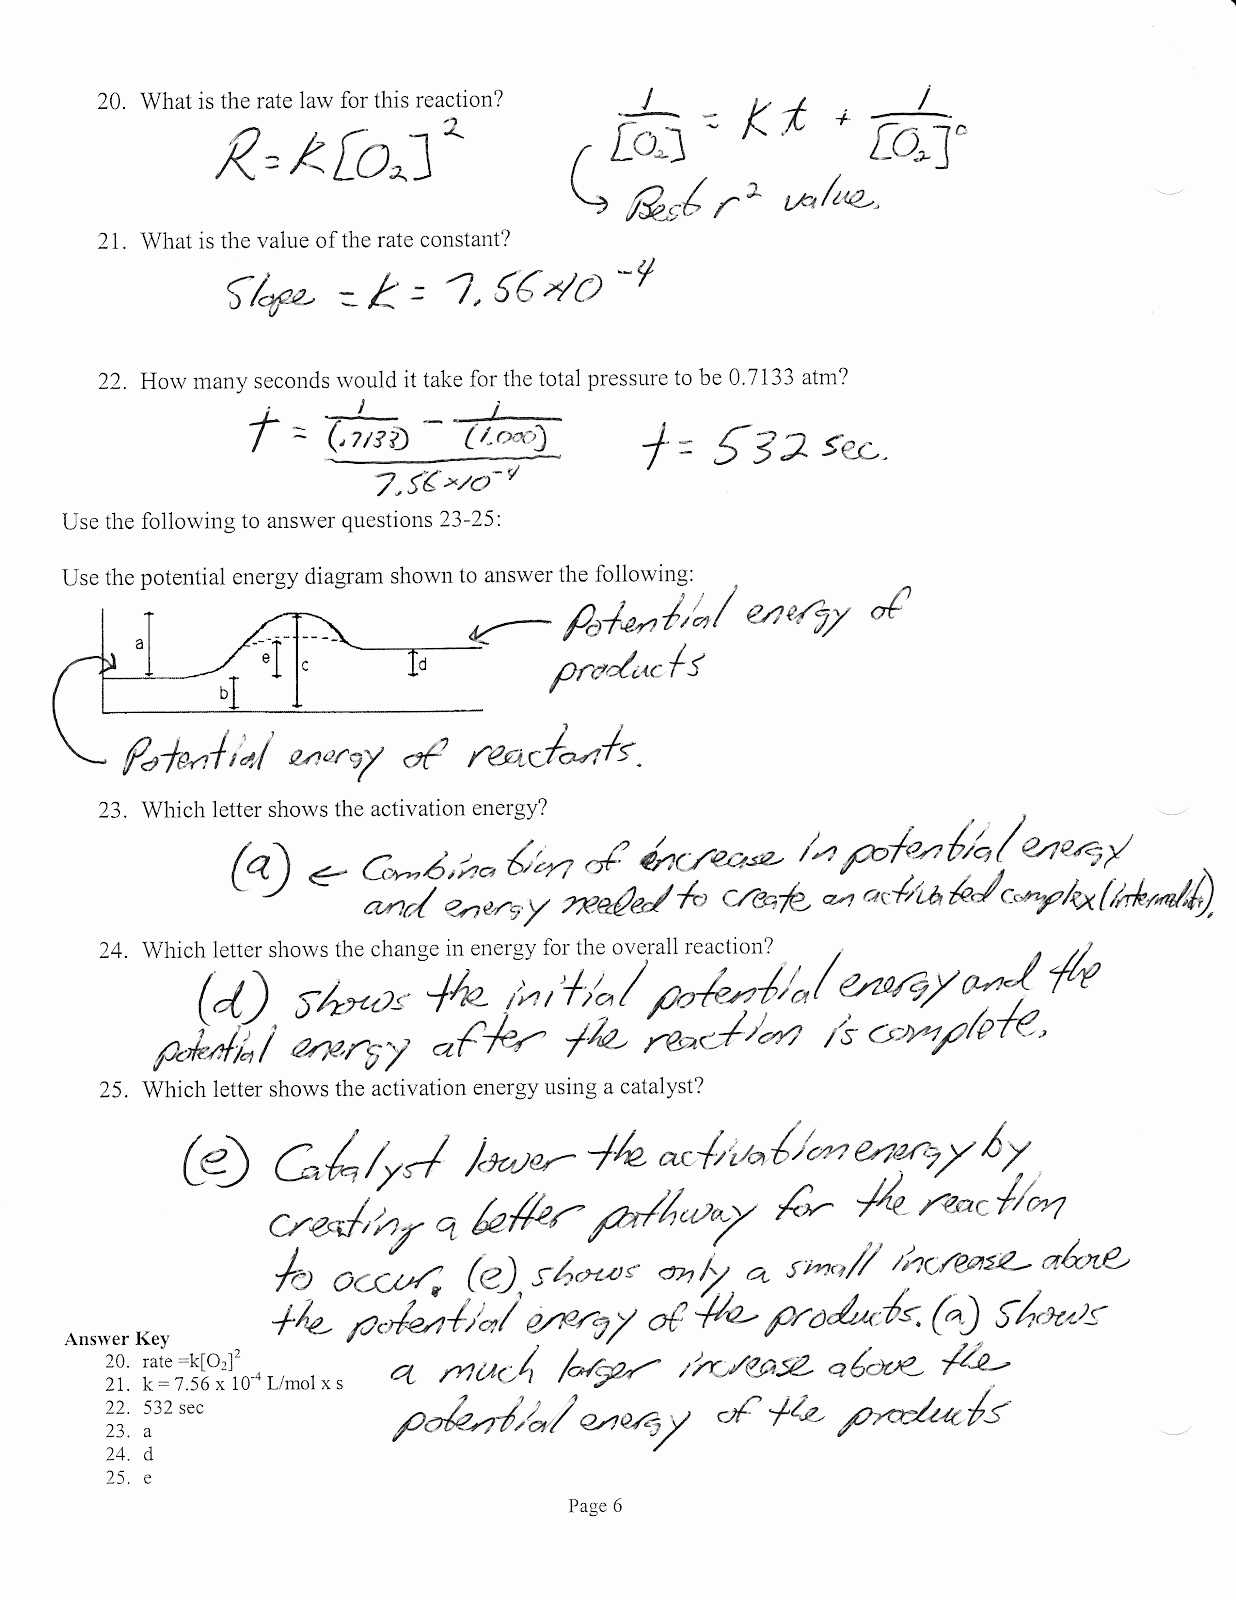 Worksheet 10 Metallic Bonds Answers | Semesprit